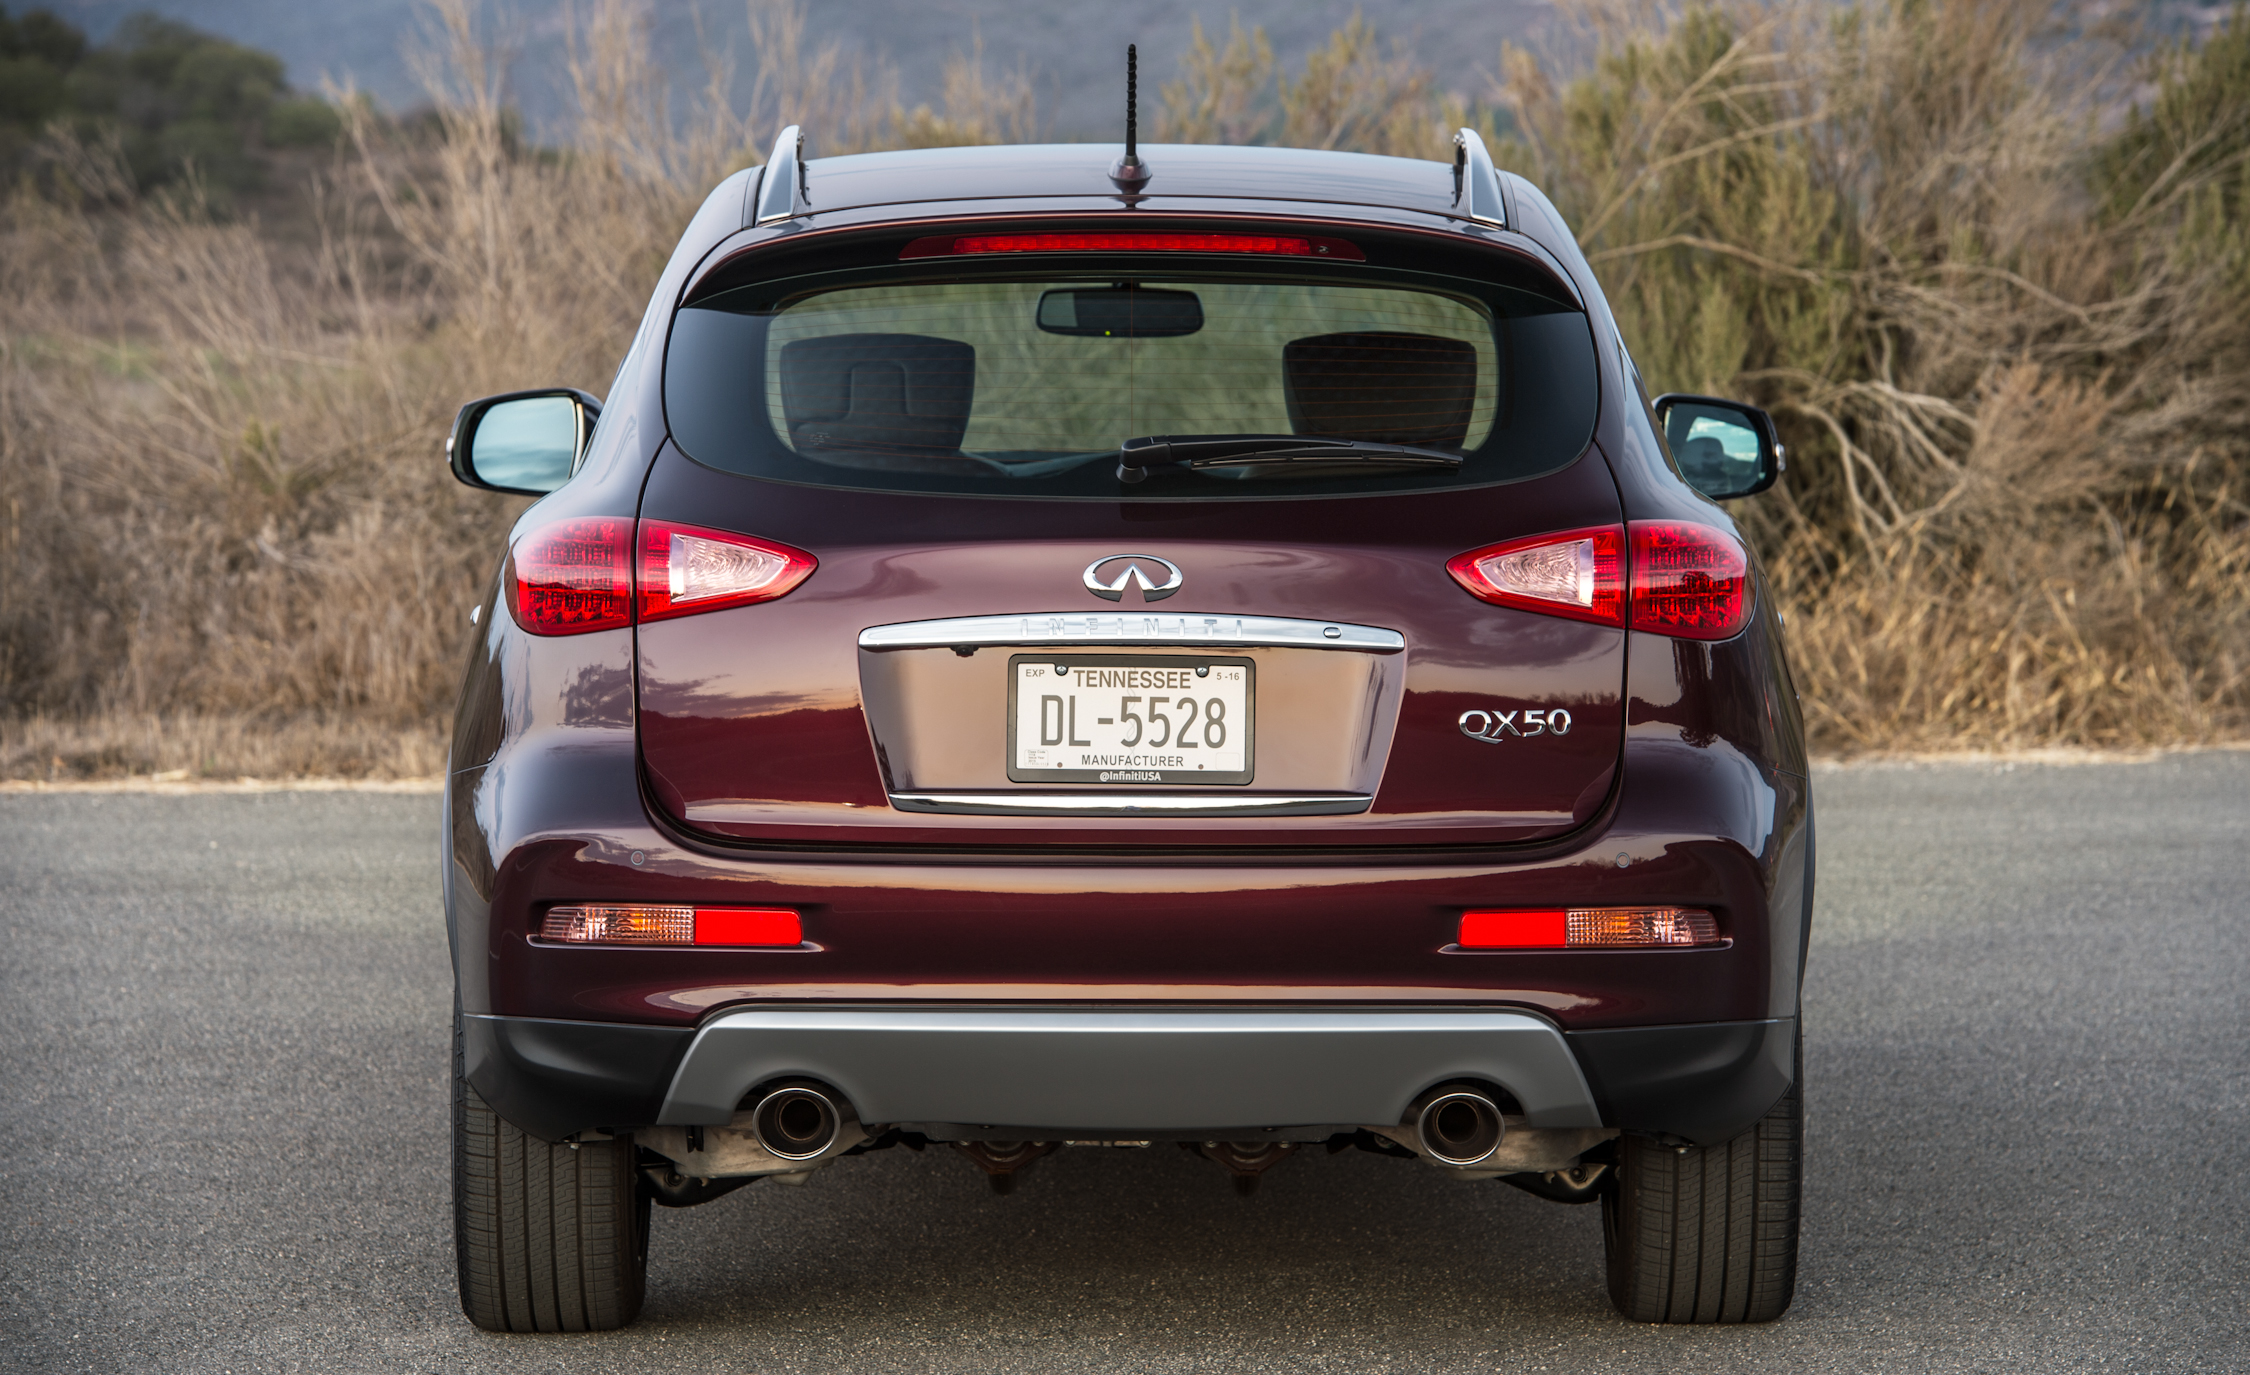 2016 Infiniti QX50 Exterior Full Rear